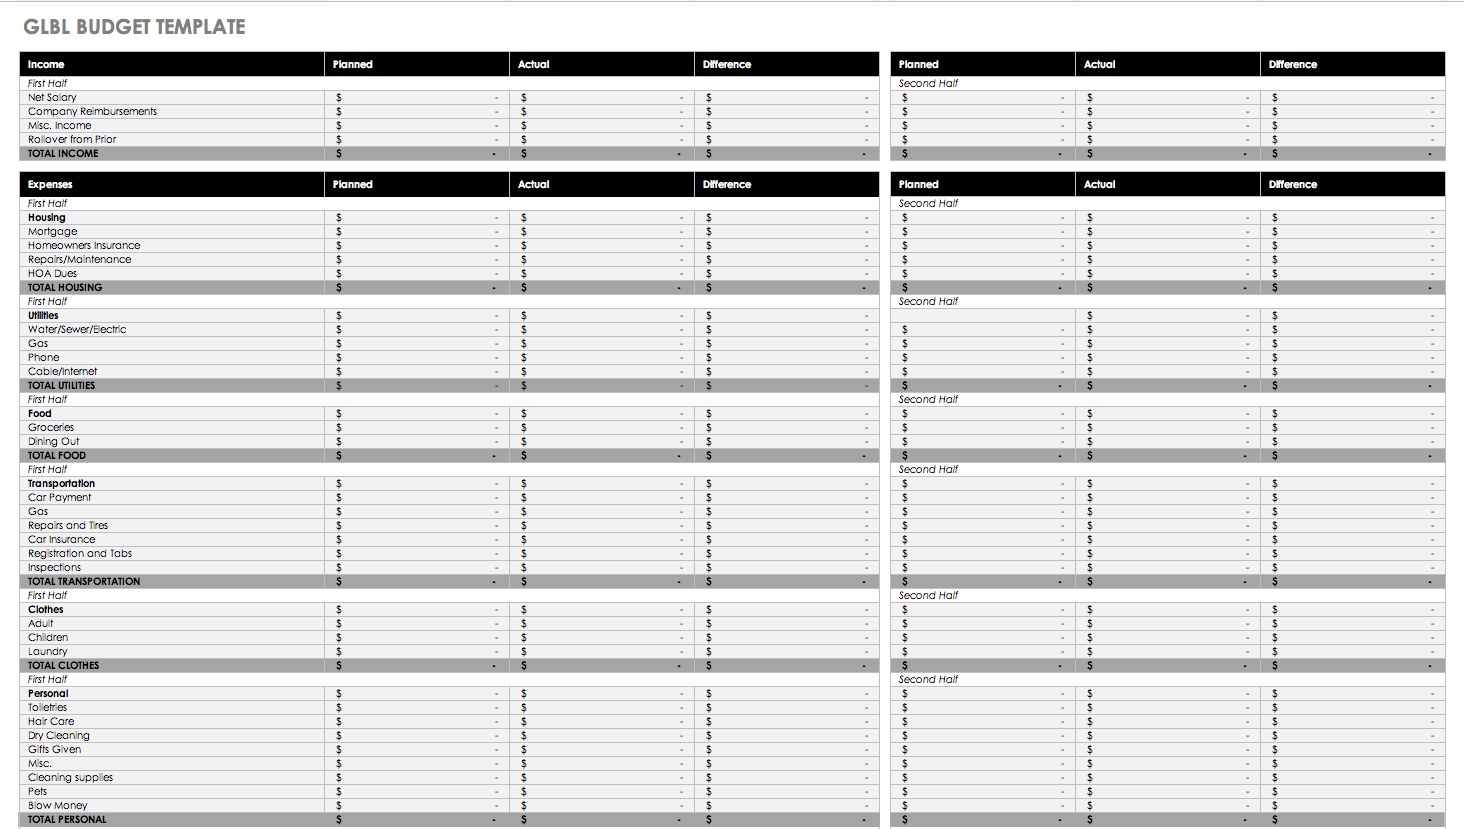 Excel Spreadsheet For Monthly Bills Intended For Free Budget Templates In Excel For Any Use Excel Spreadsheet For Monthly Bills Google Spreadshee Google Spreadshee excel spreadsheet for tracking monthly bills